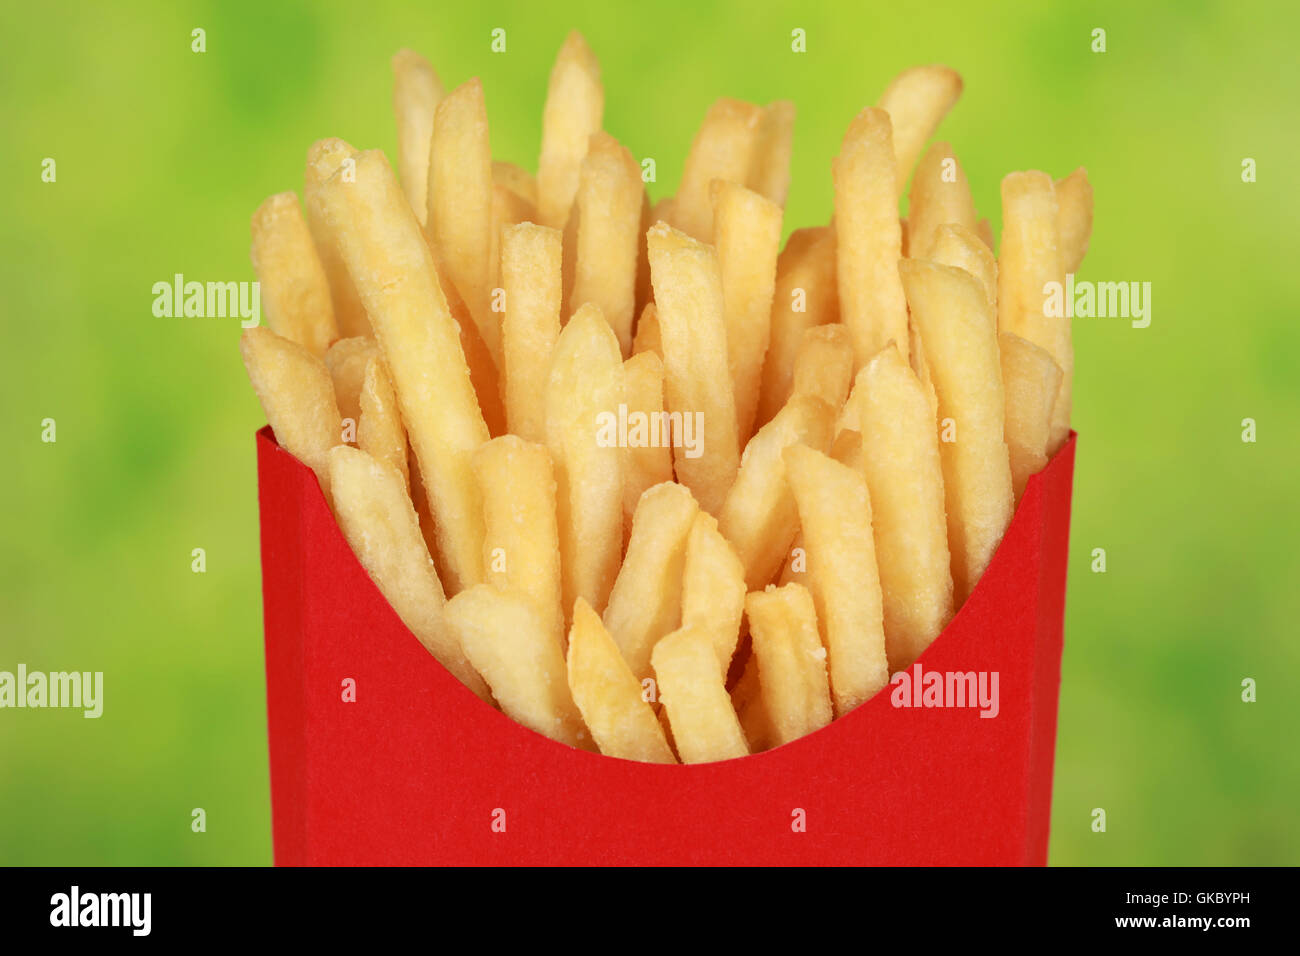 french fries - Stock Image